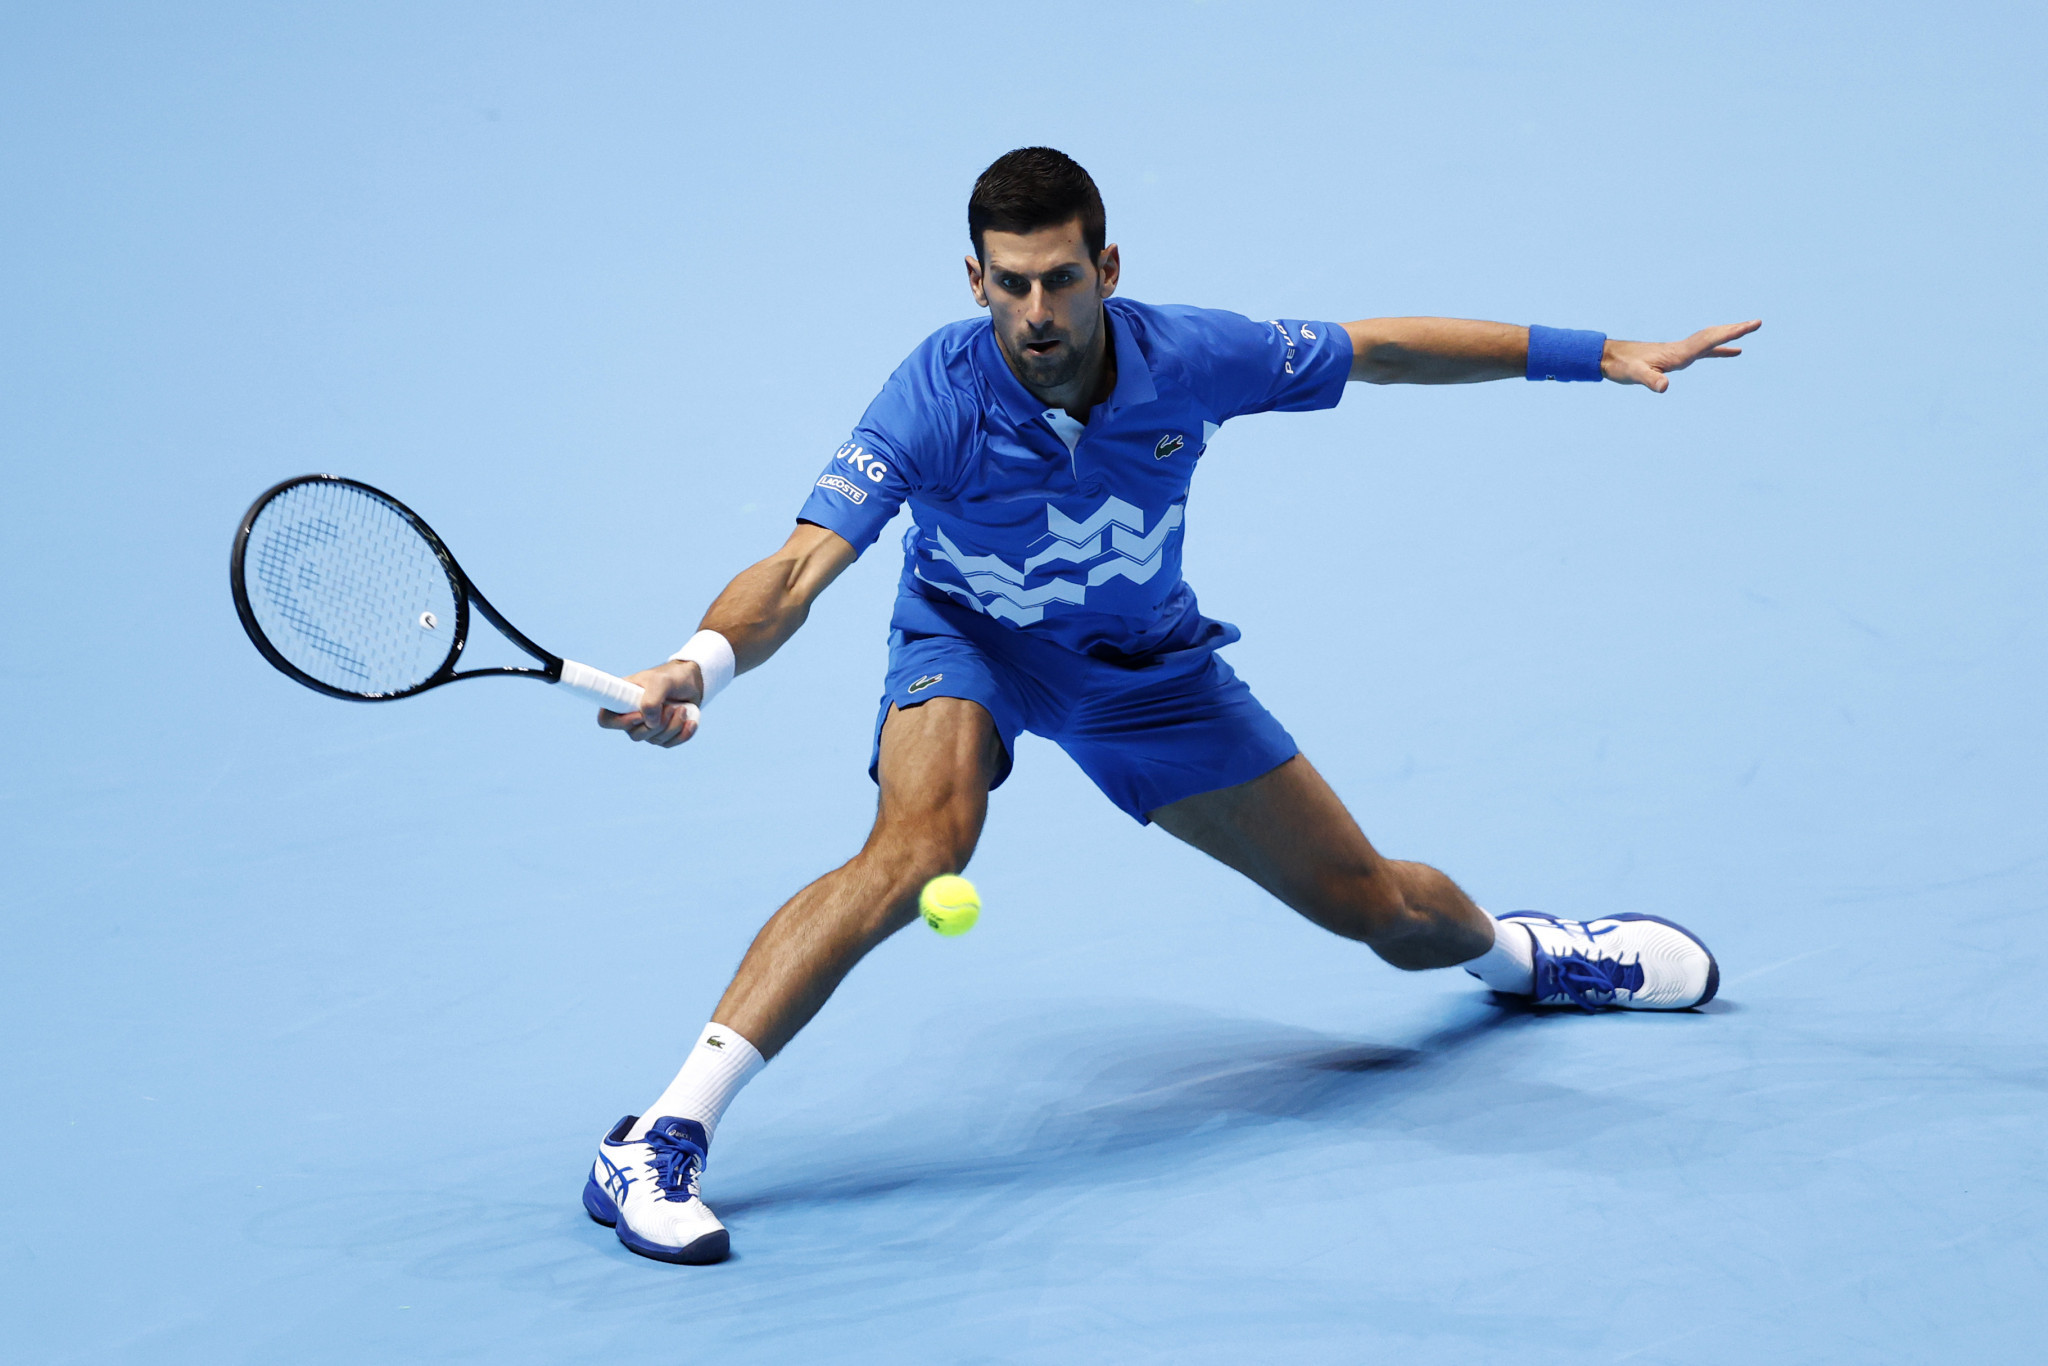 Top seed Novak Djokovic defeated Diego Schwartzman in straight sets on day two of the ATP Finals in London ©Getty Images